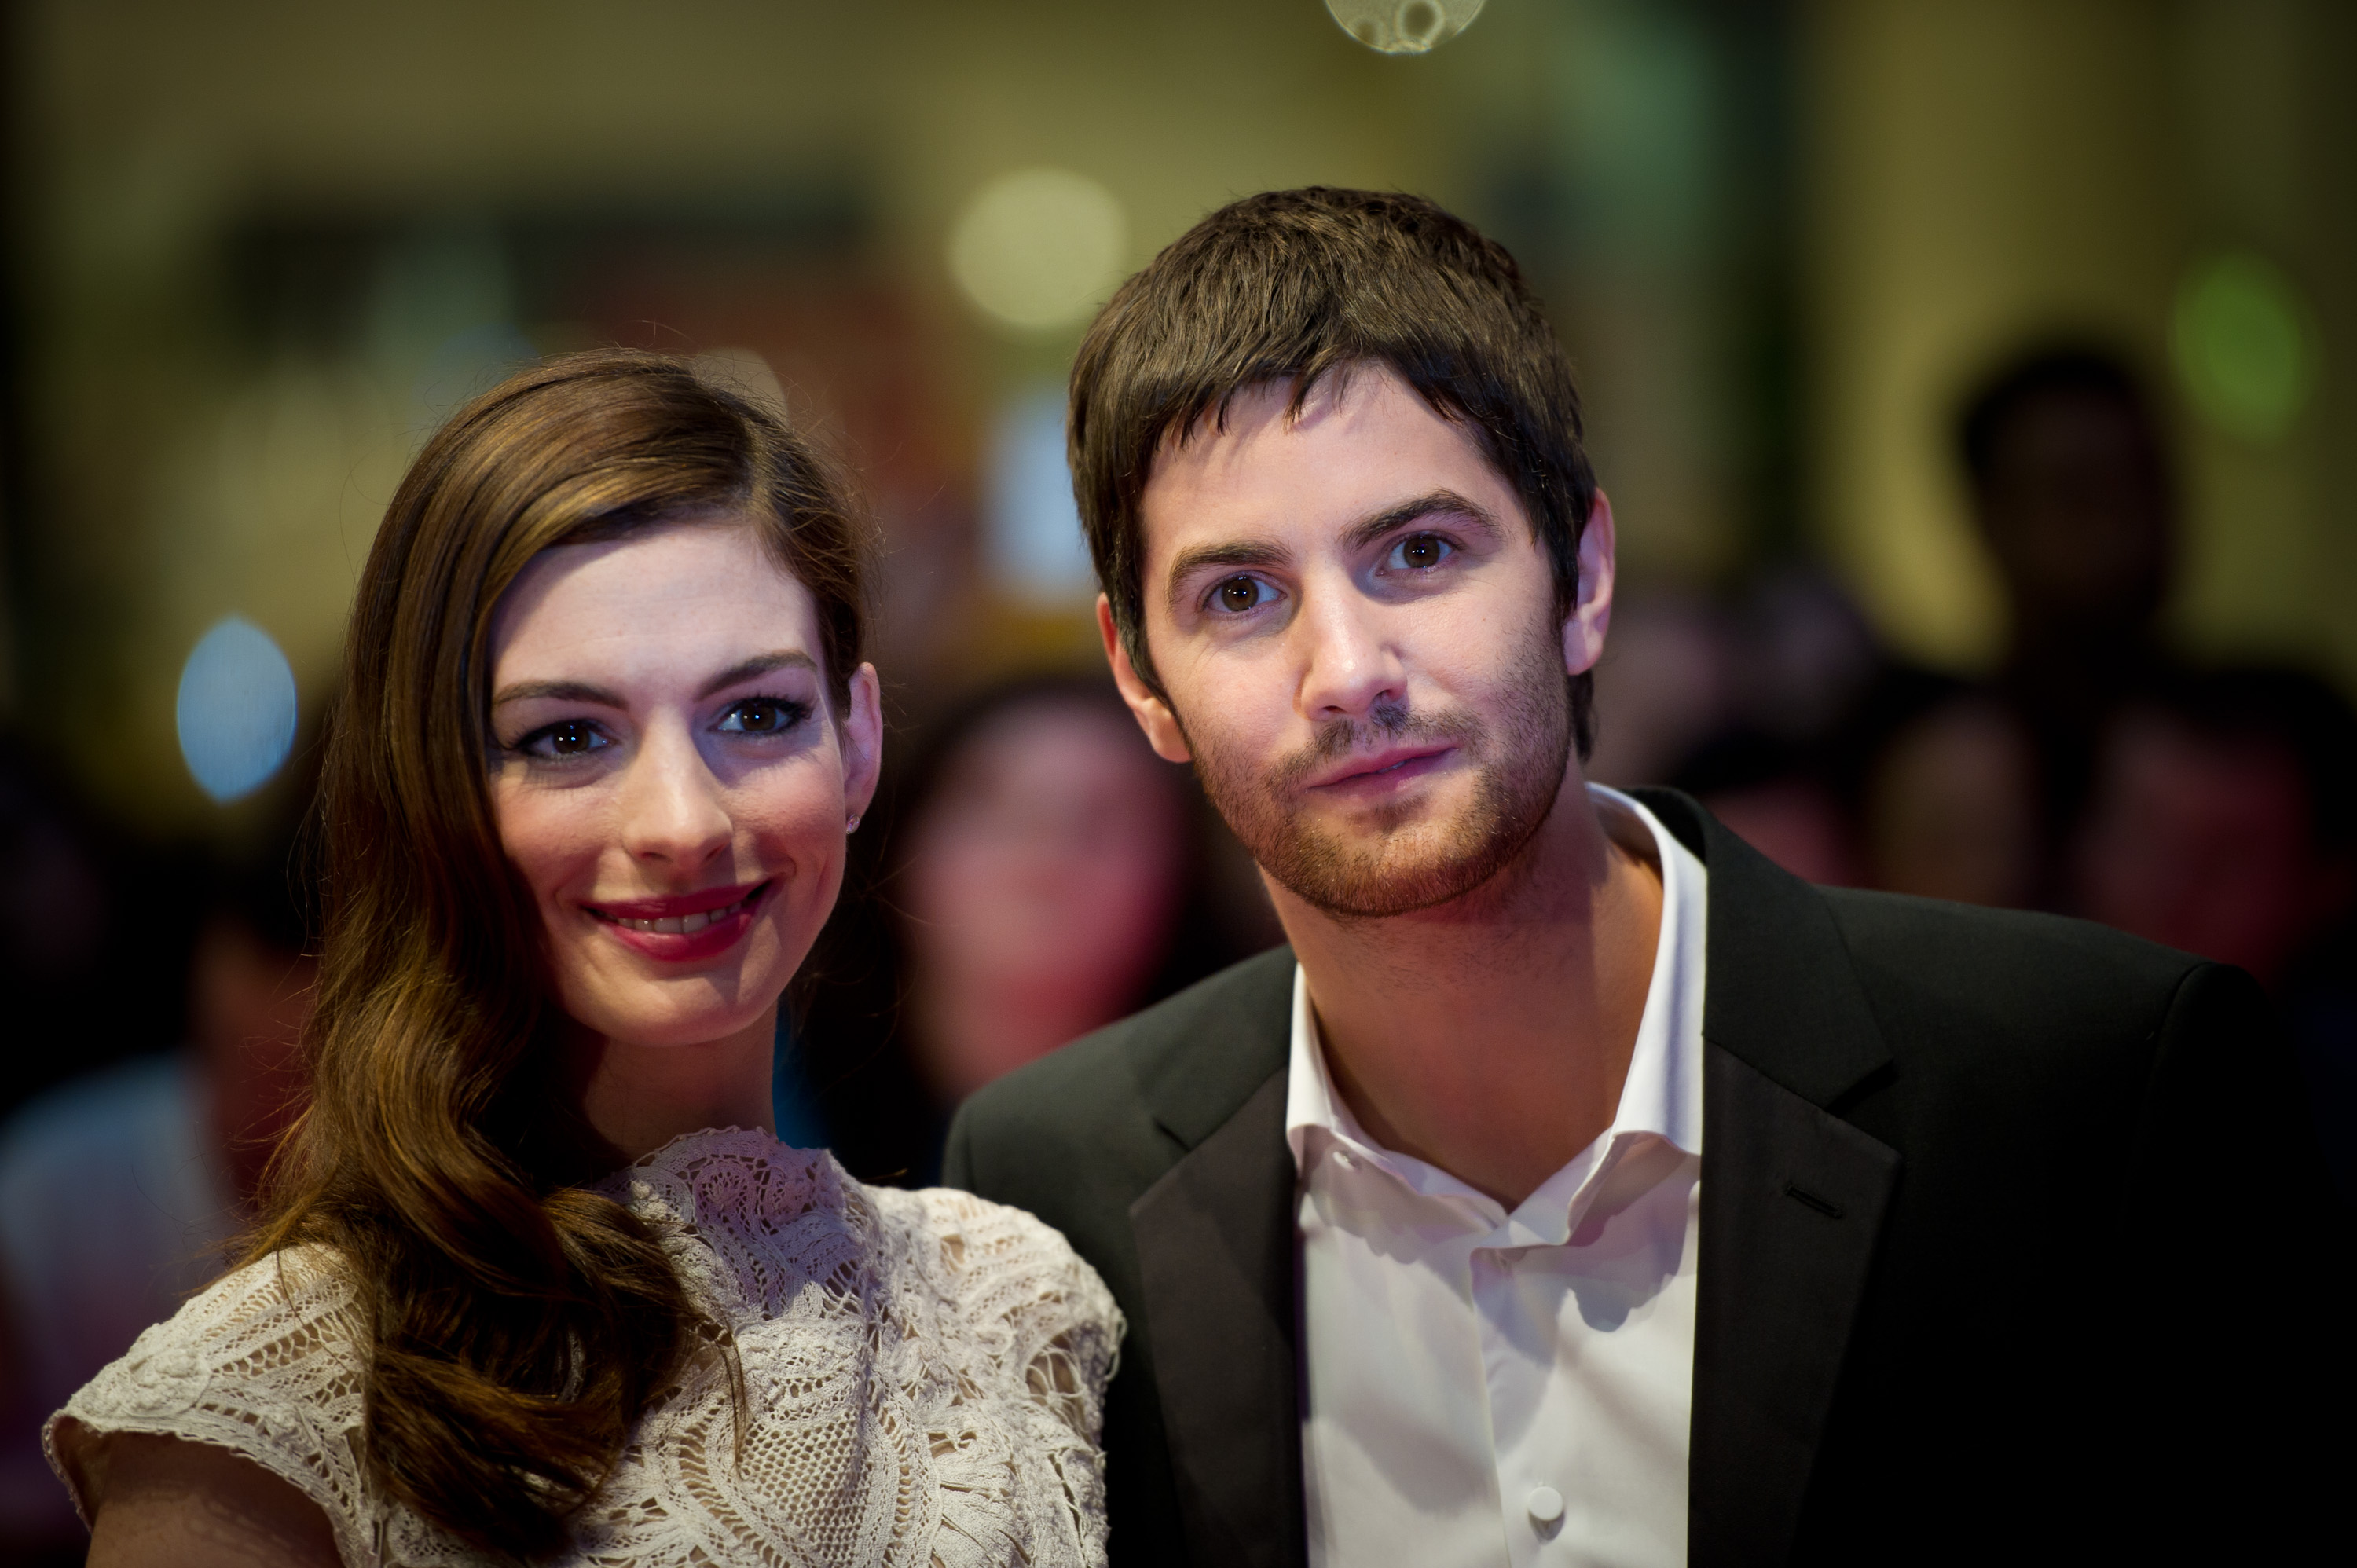 Anne Hathaway and Jim Sturgess posed for pictures.